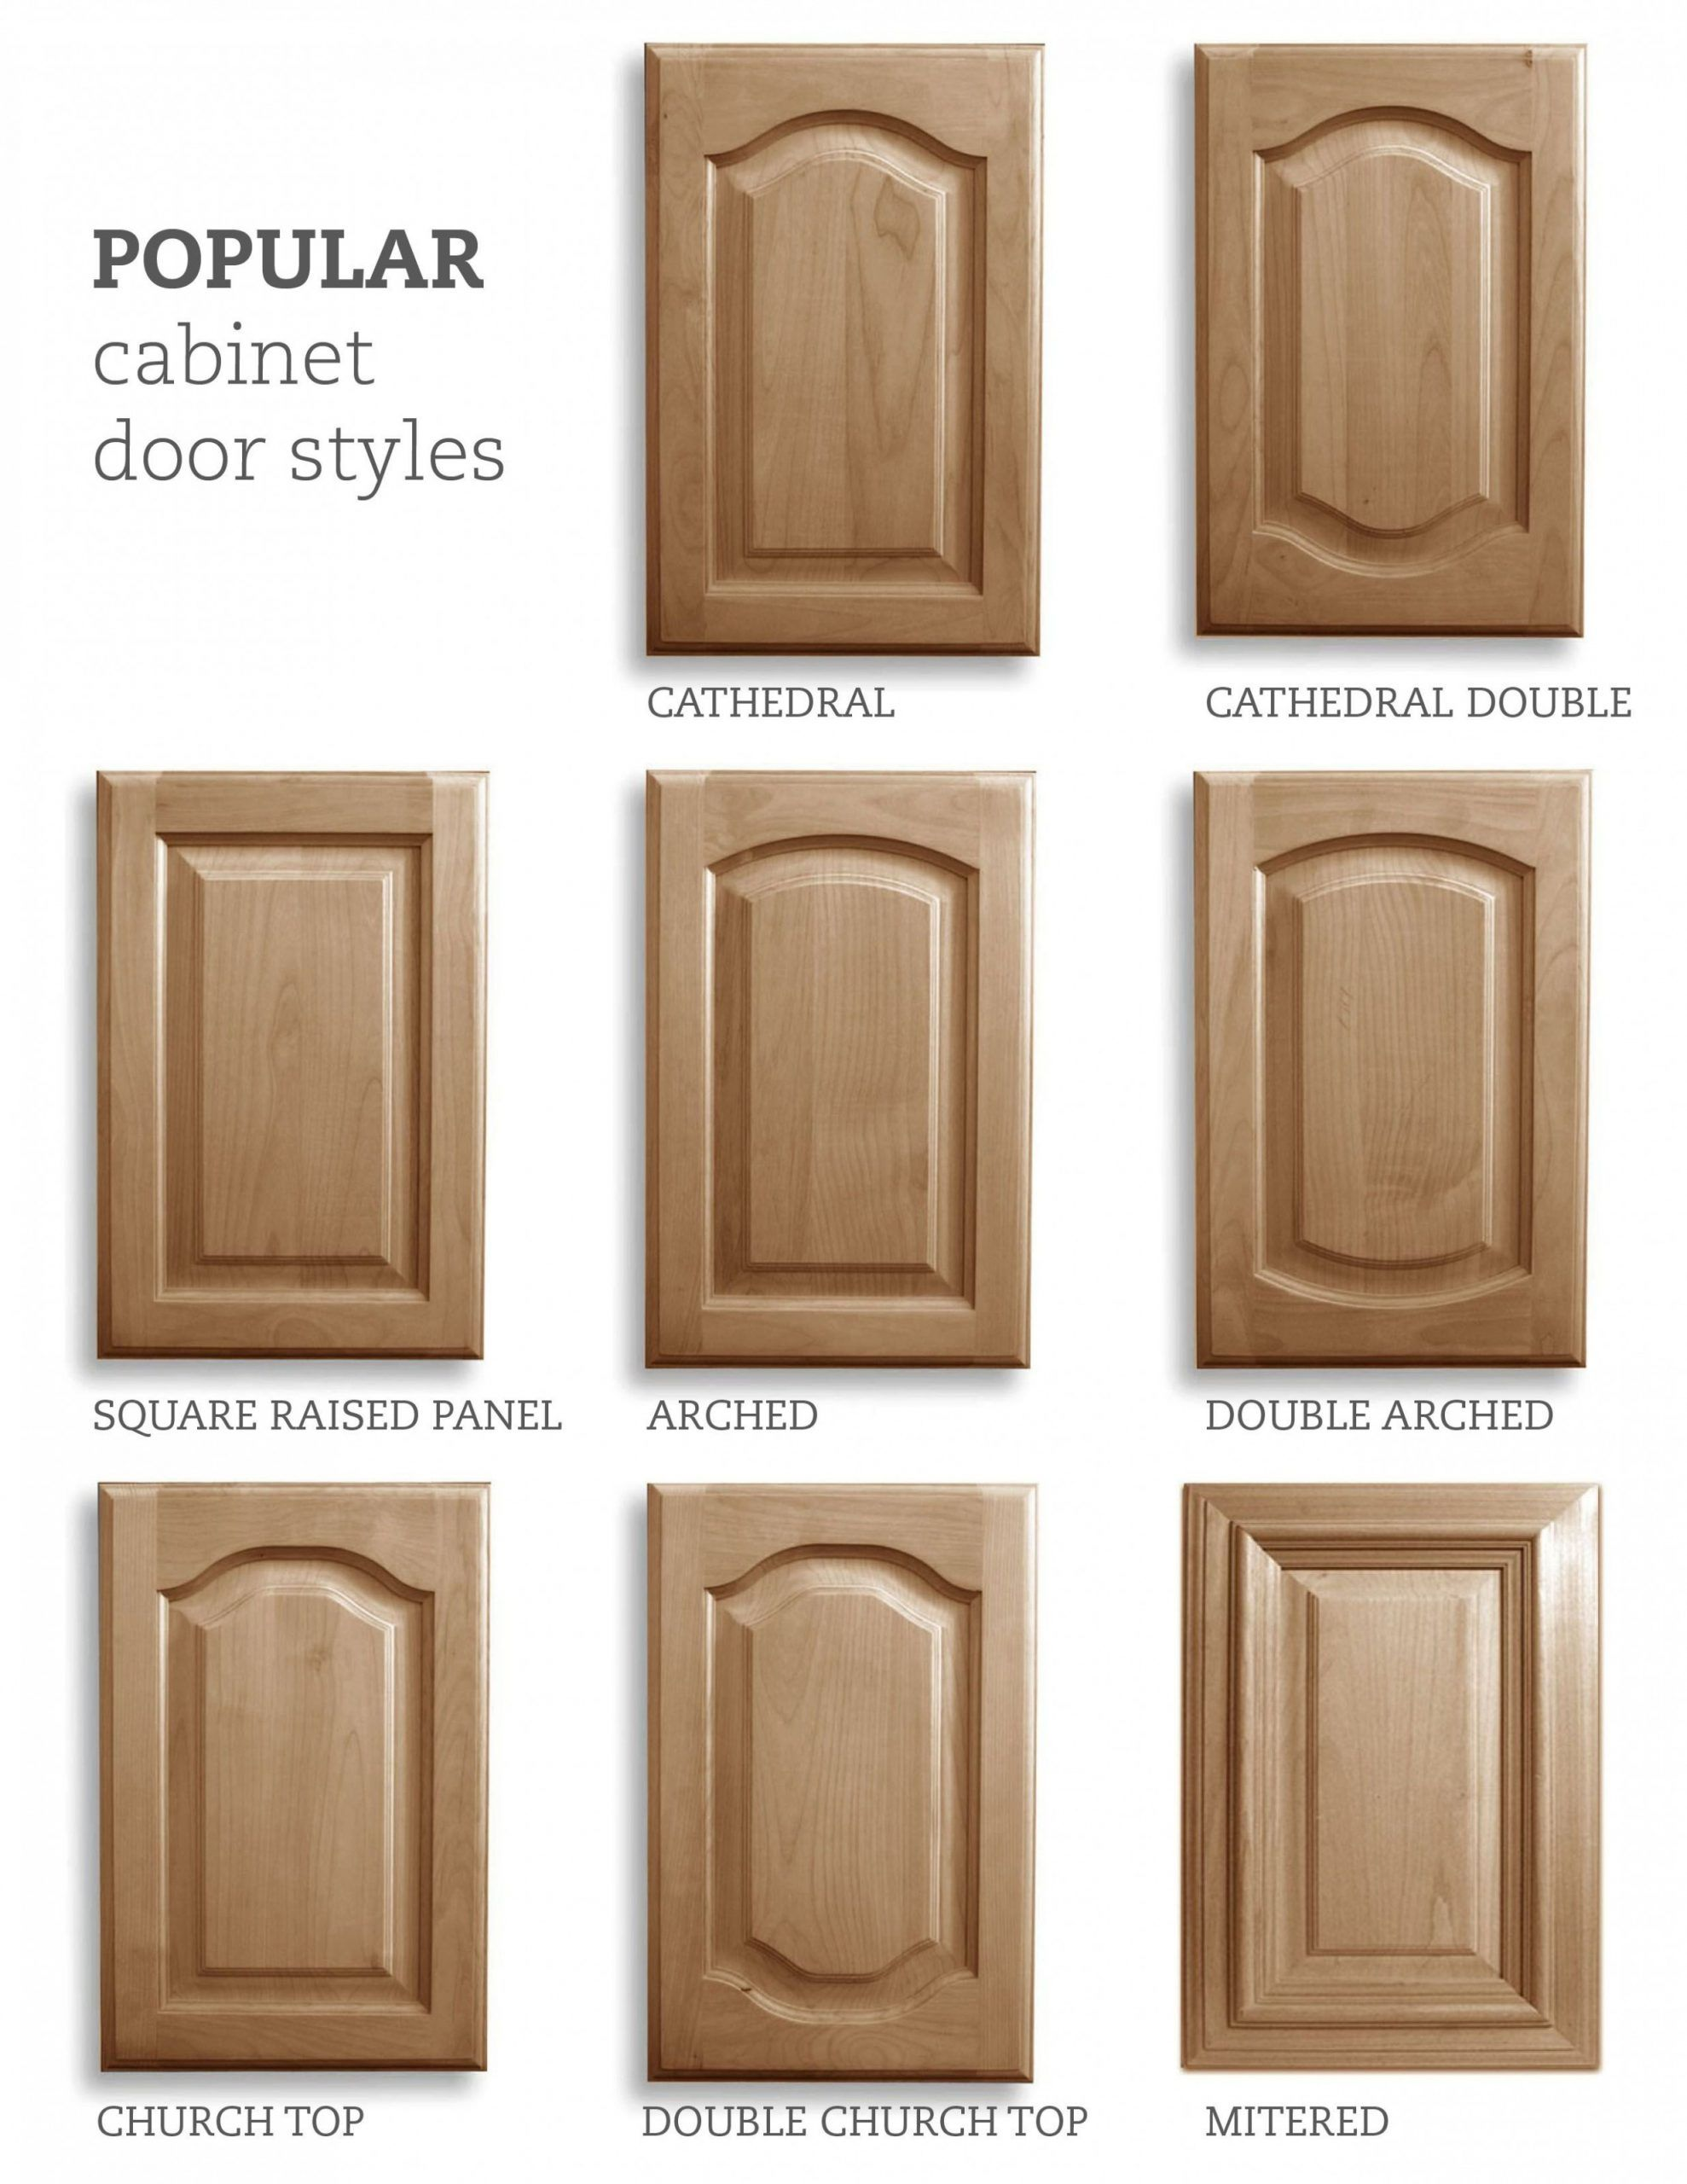 Arch Style Kitchen Cabinets Kitchen Cabinet Door Styles Cabinet Door Designs Cabinet Door Styles